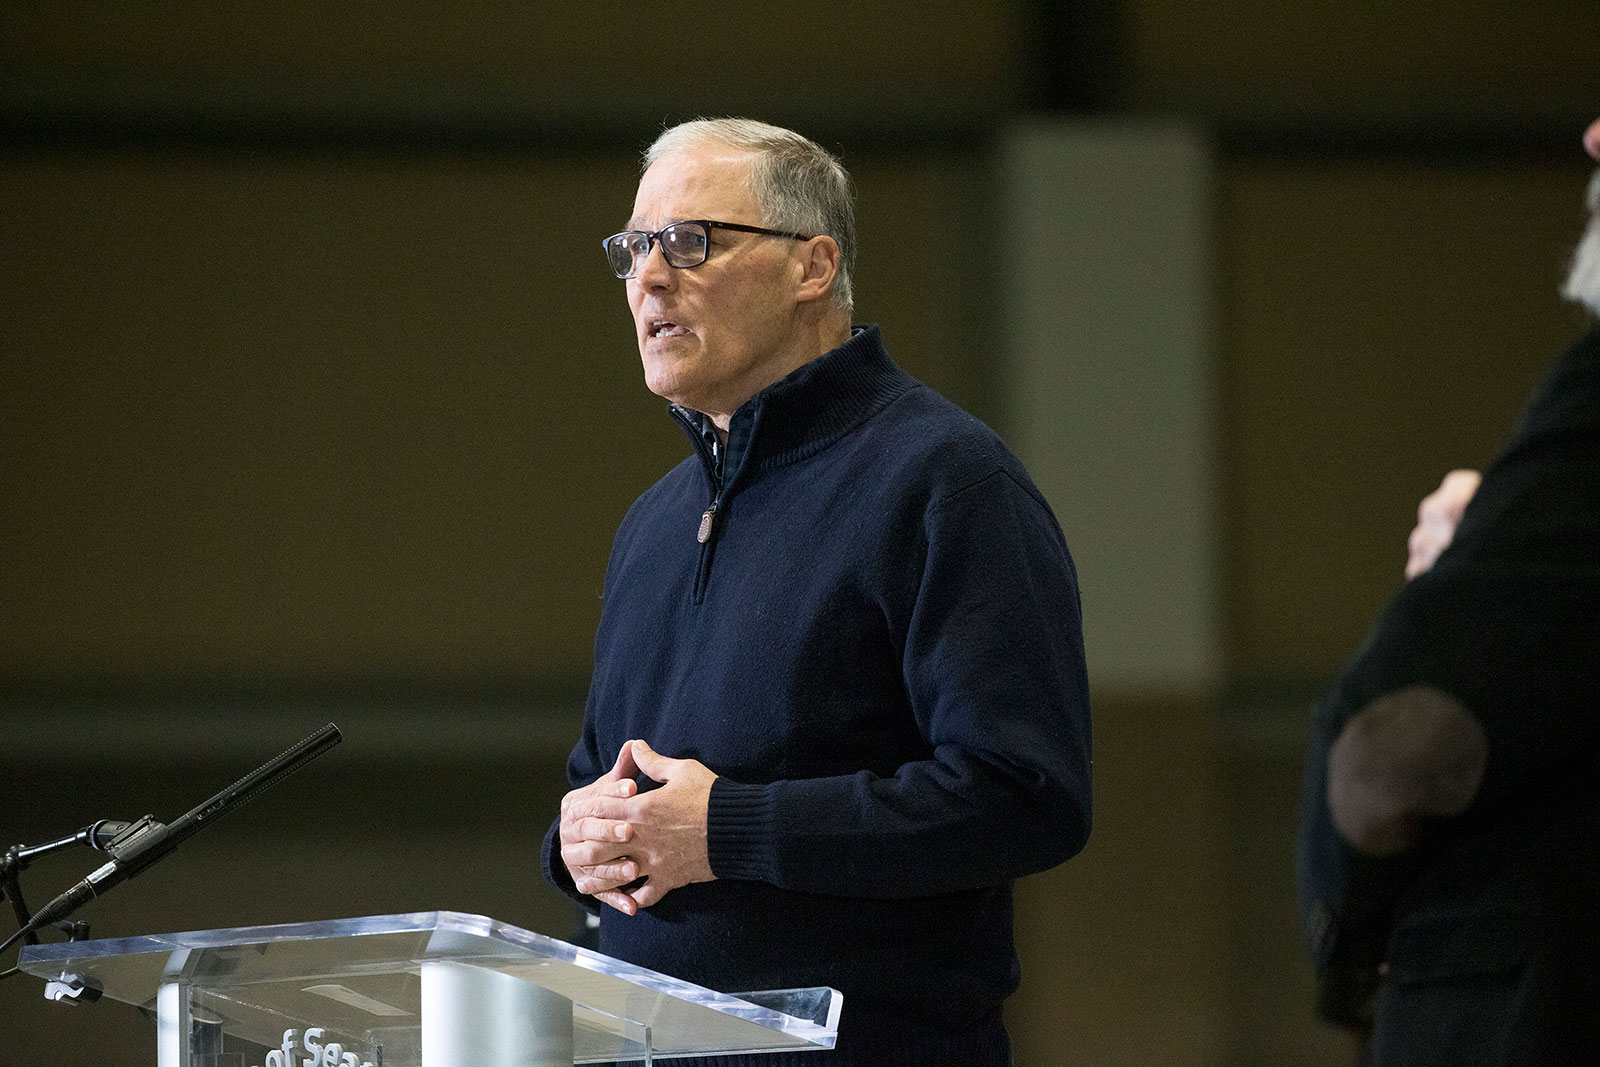 Washington Gov. Jay Inslee speaks during a press conference in March.